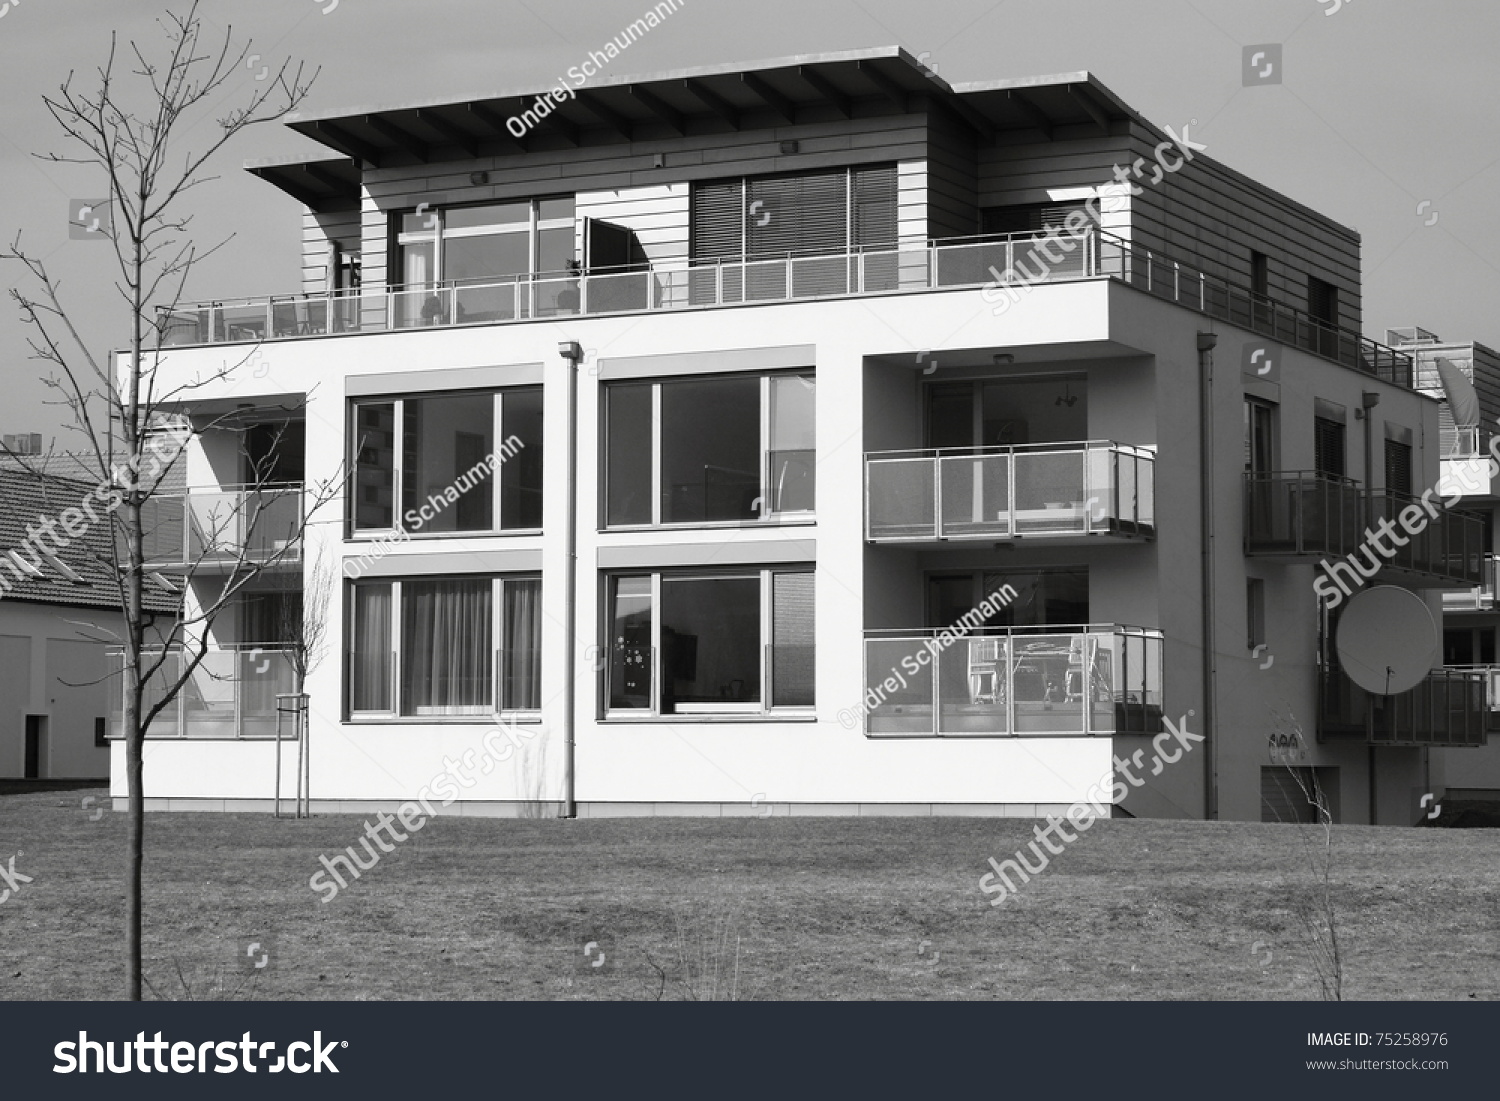 Modern Flat House In Black And White Stock Photo 75258976